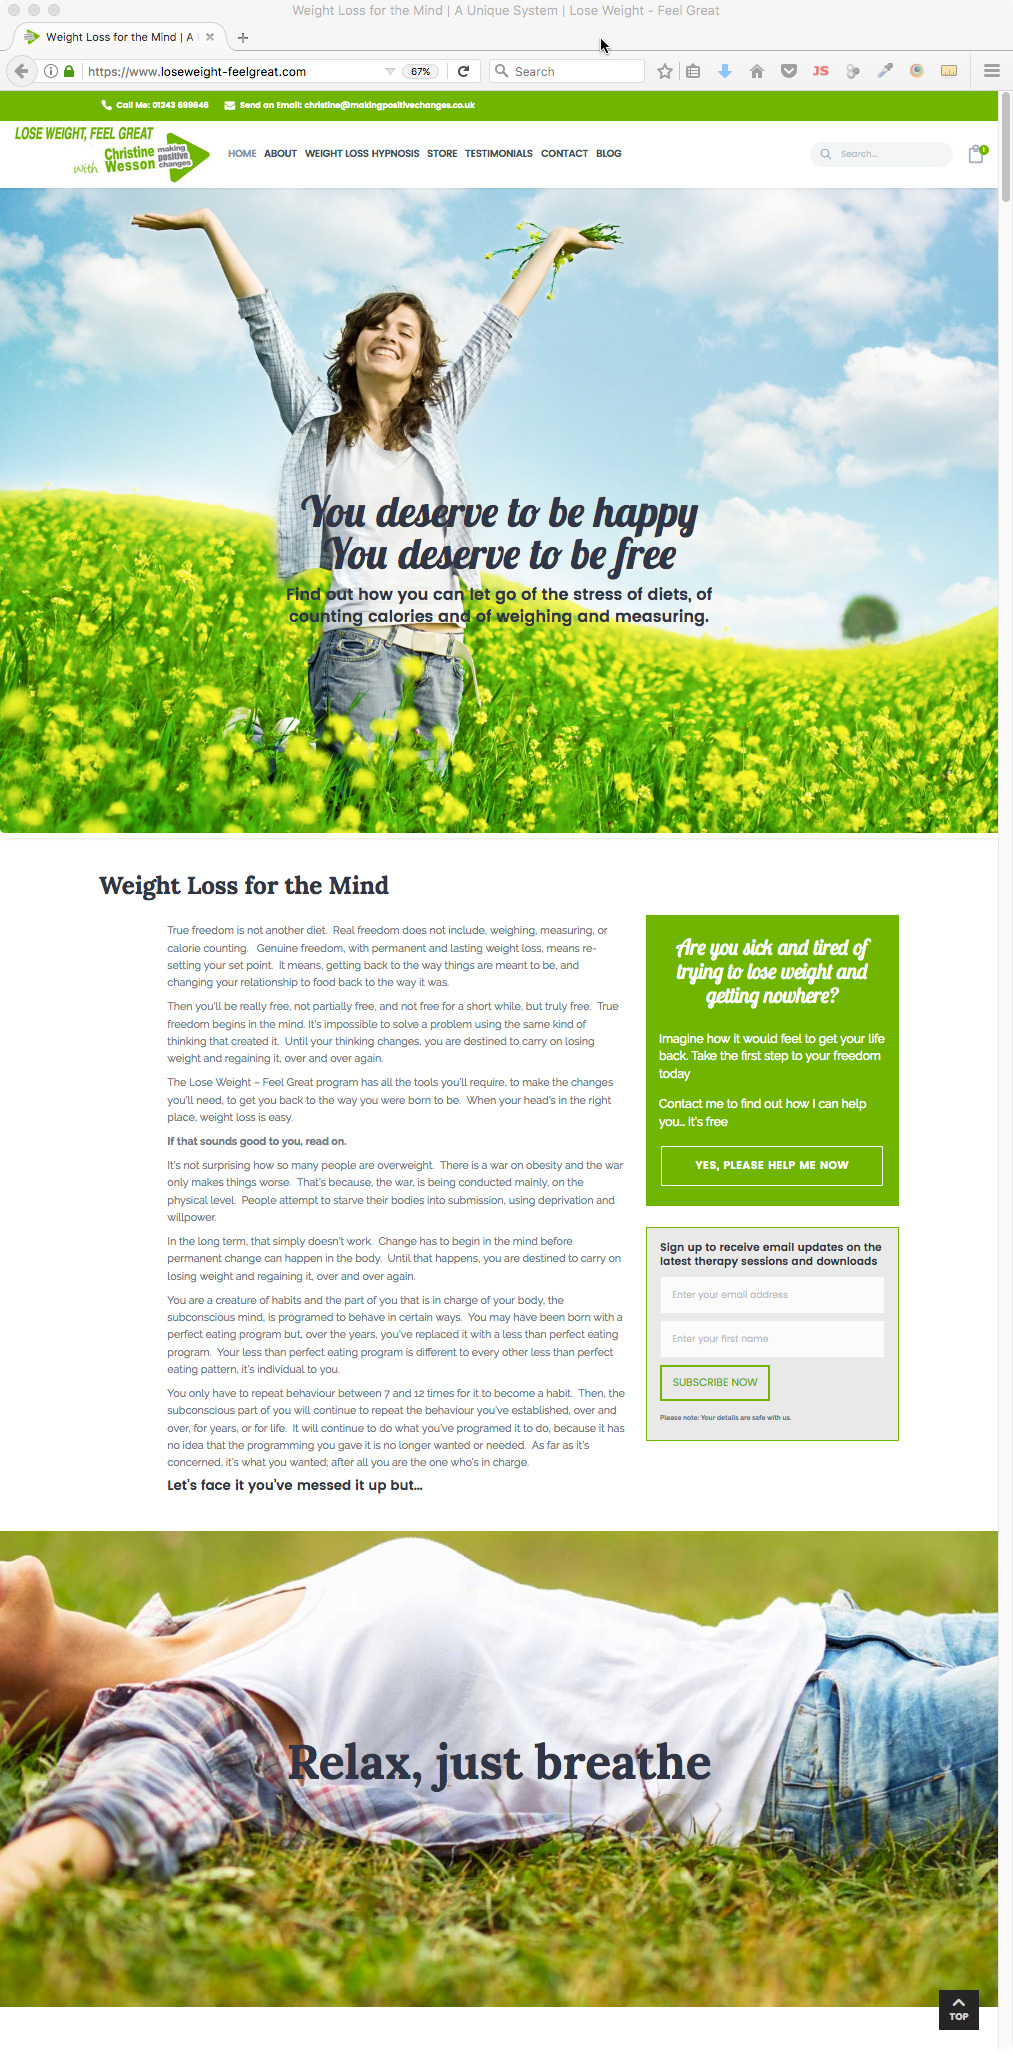 Zithromax lose weight image 6